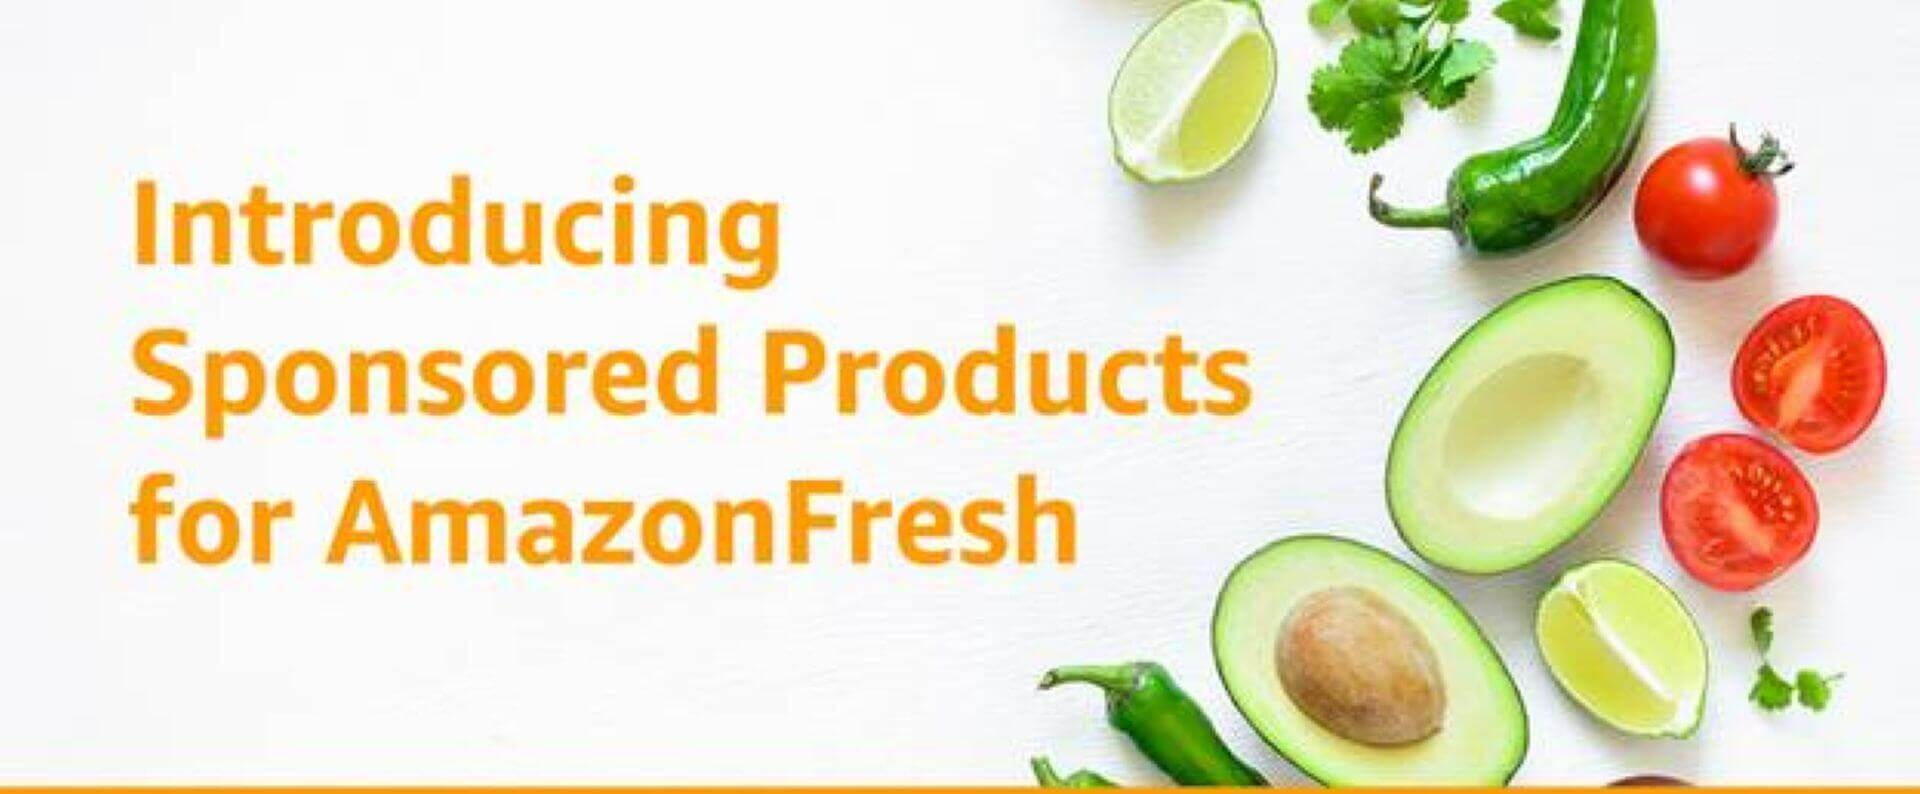 Amazon extends Sponsored Products to AmazonFresh for CPG brands